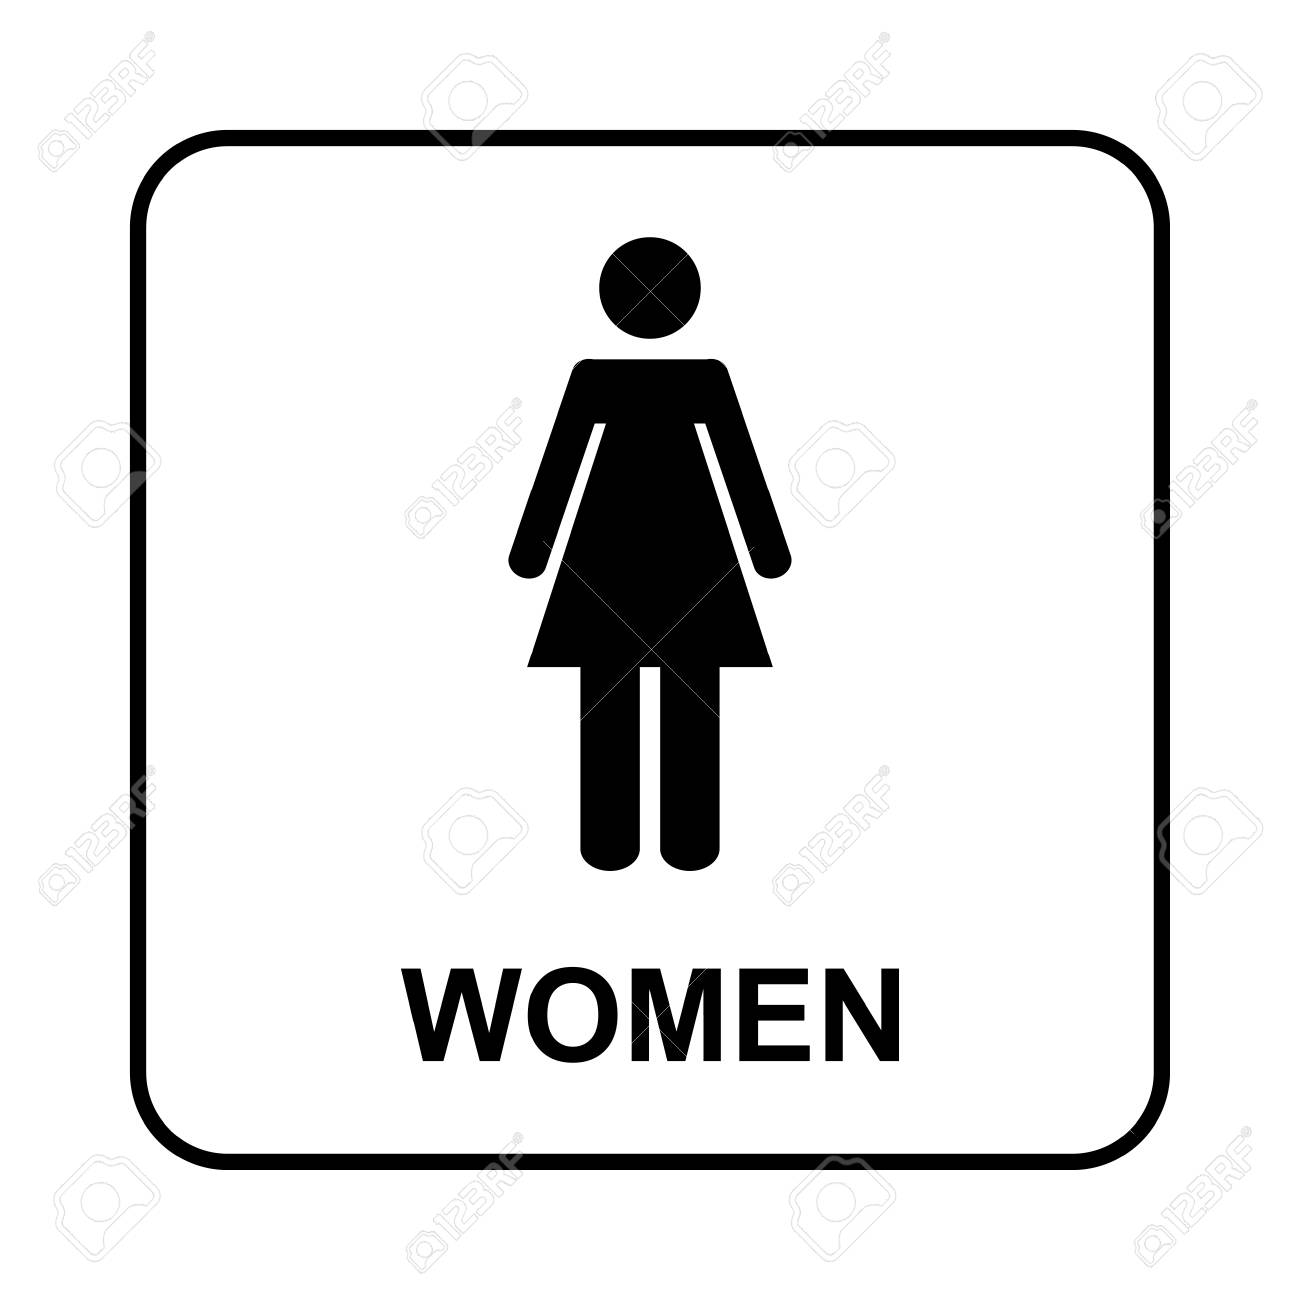 Toilet Sign Wc Women Royalty Free Cliparts Vectors And Stock